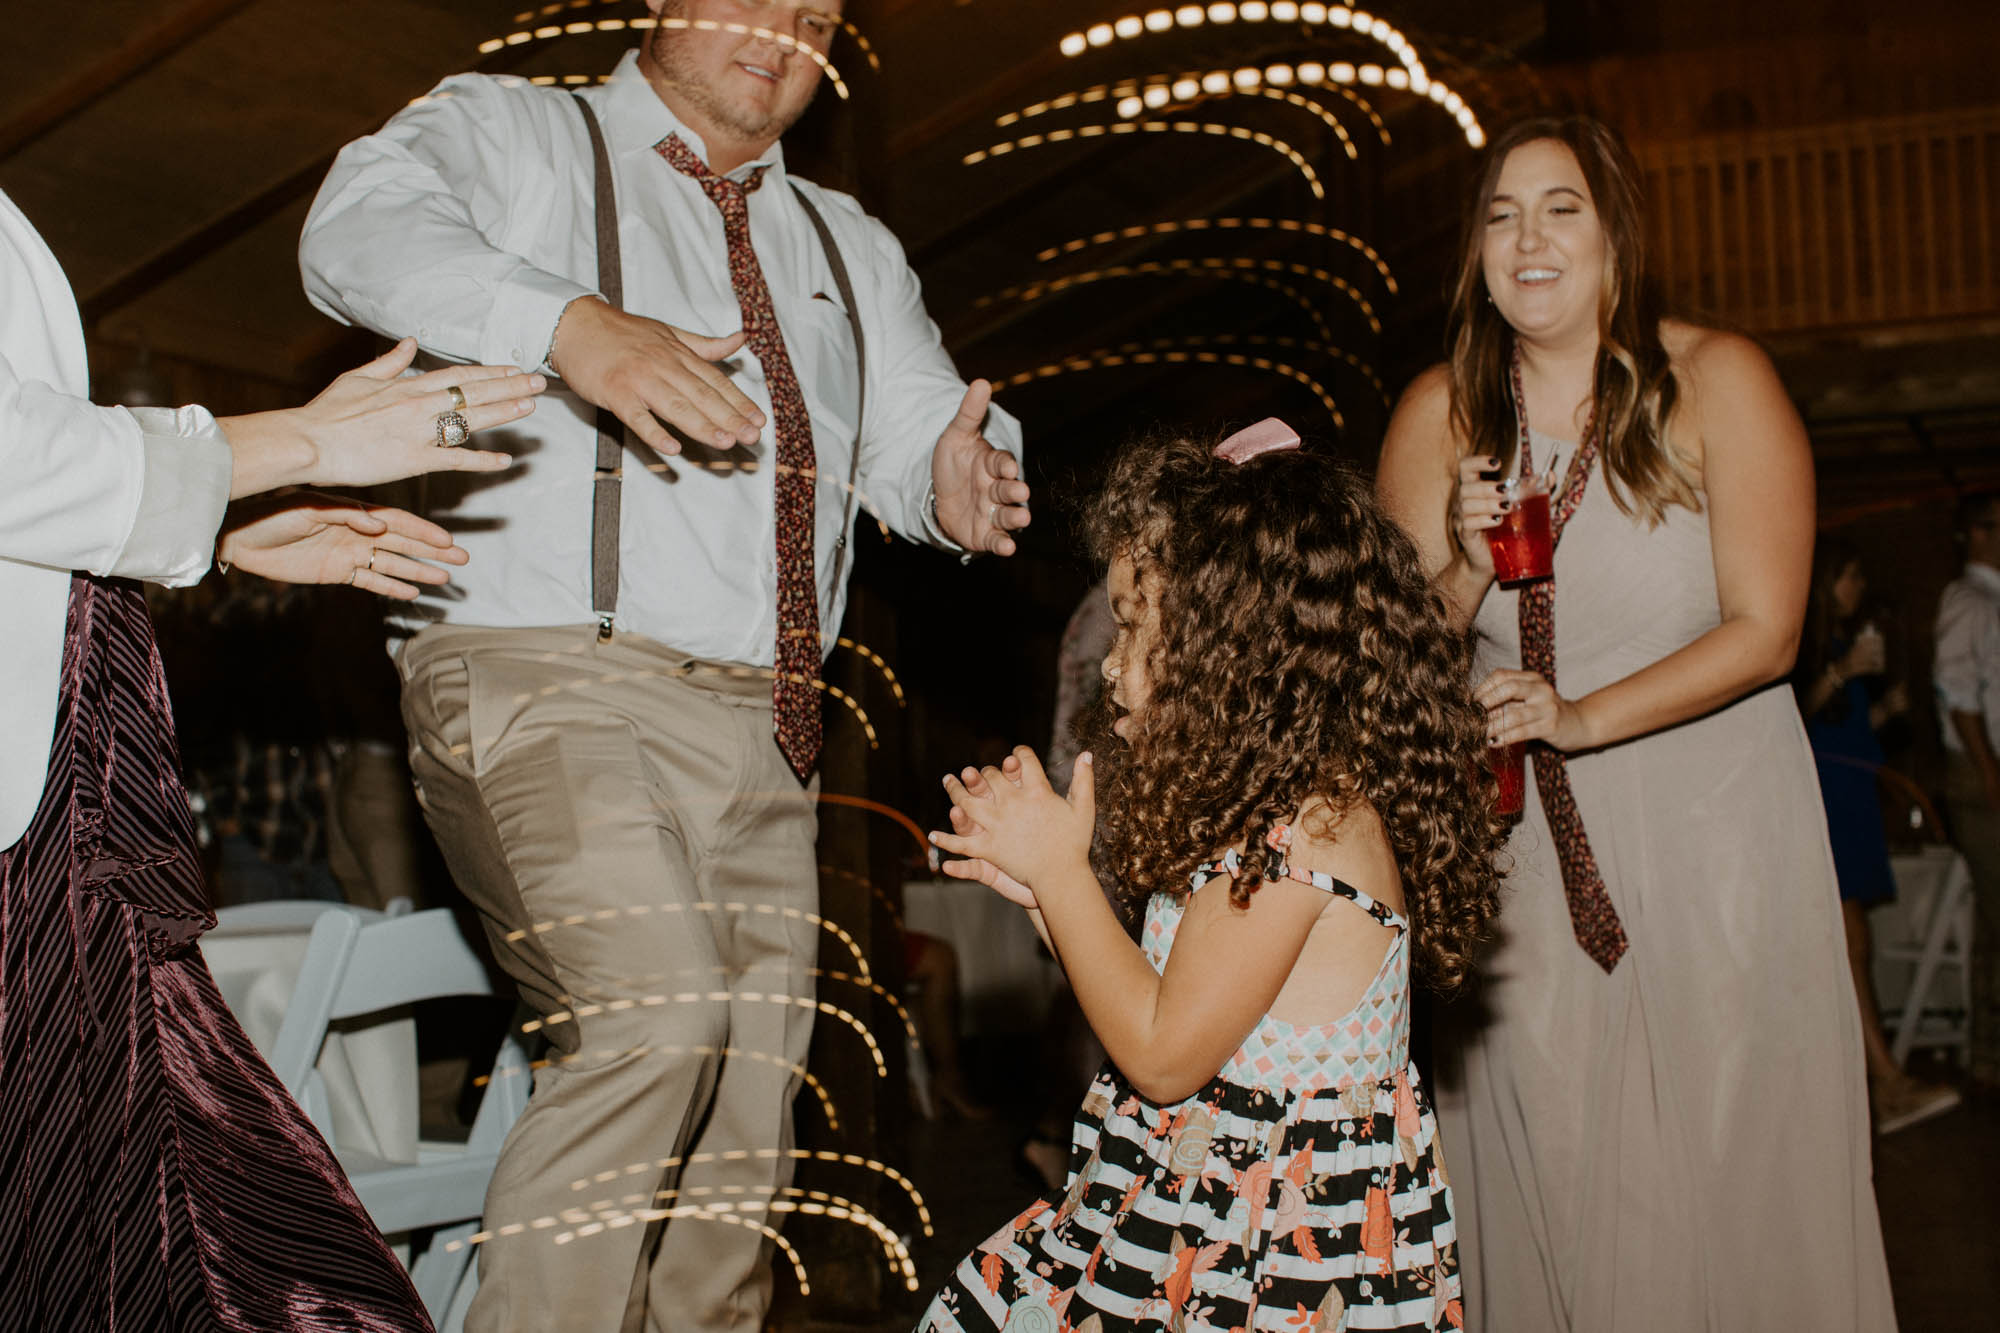 family and bridal party dancing at wedding reception in fort worth